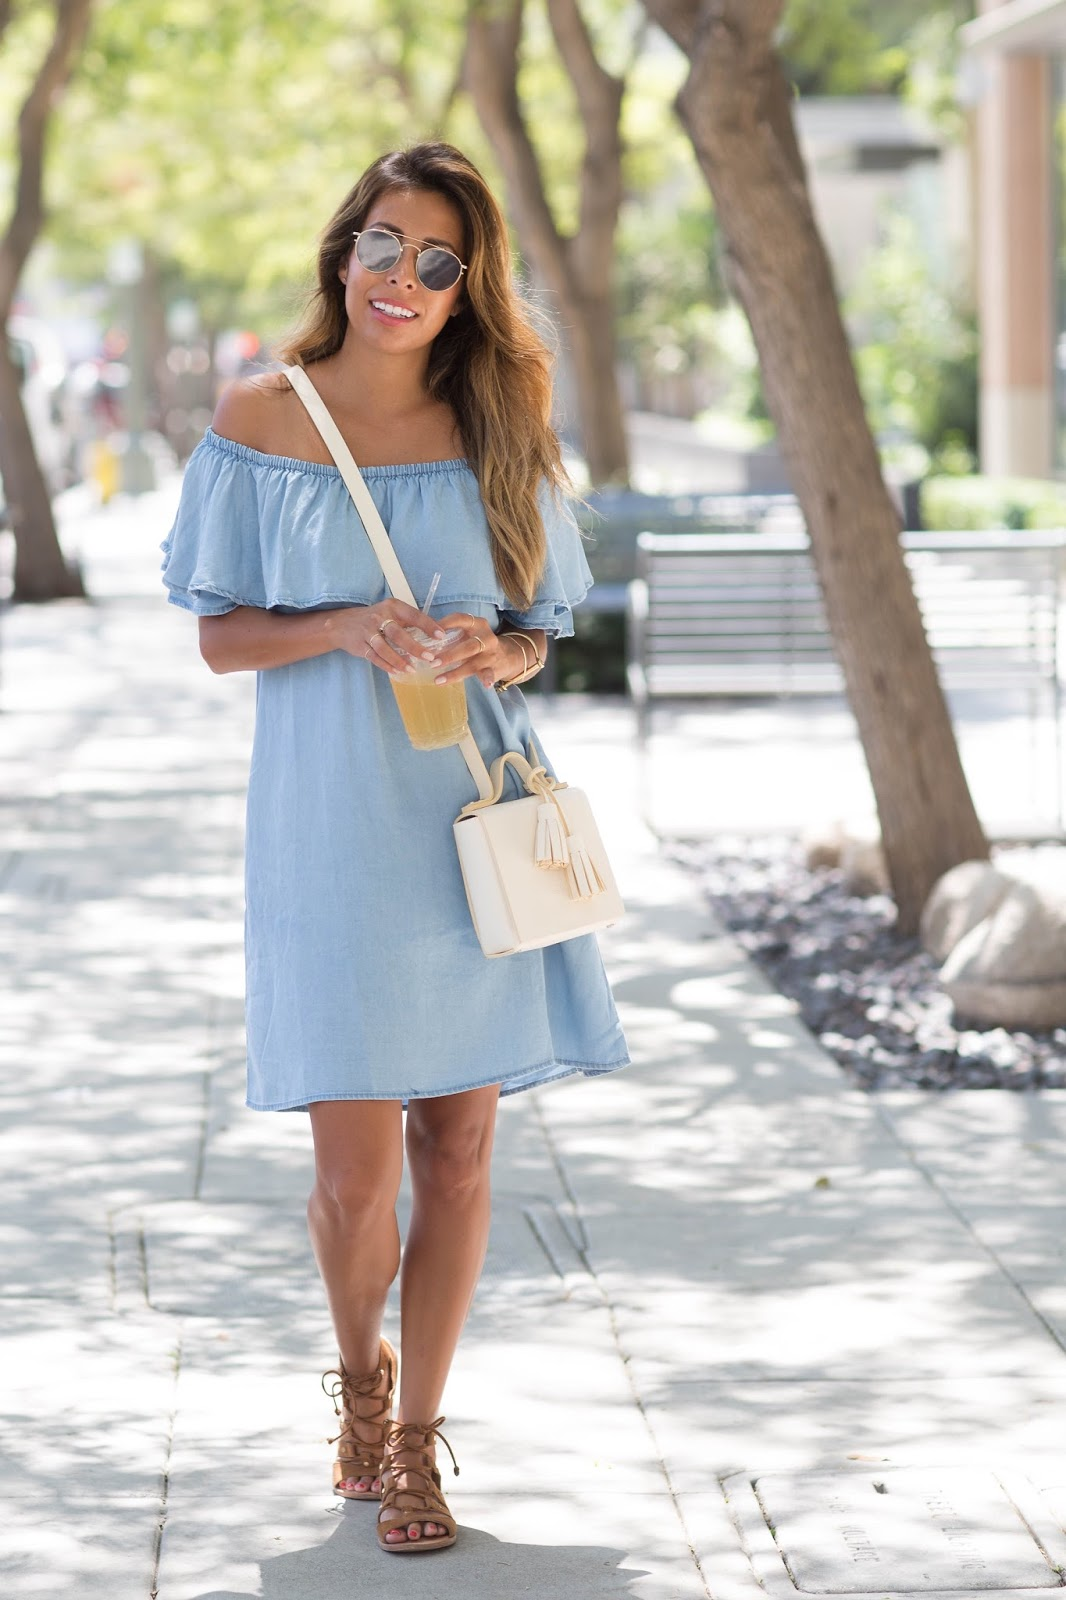 Dare to show some skin in an off the shoulder dress this summer, and achieve a gorgeous carefree style like Ashley Torres! Pair a denim dress such as this with gladiator sandals and rock this look. Dress: Chicwish, Sandals: Dolce, Bag: Less Bore.